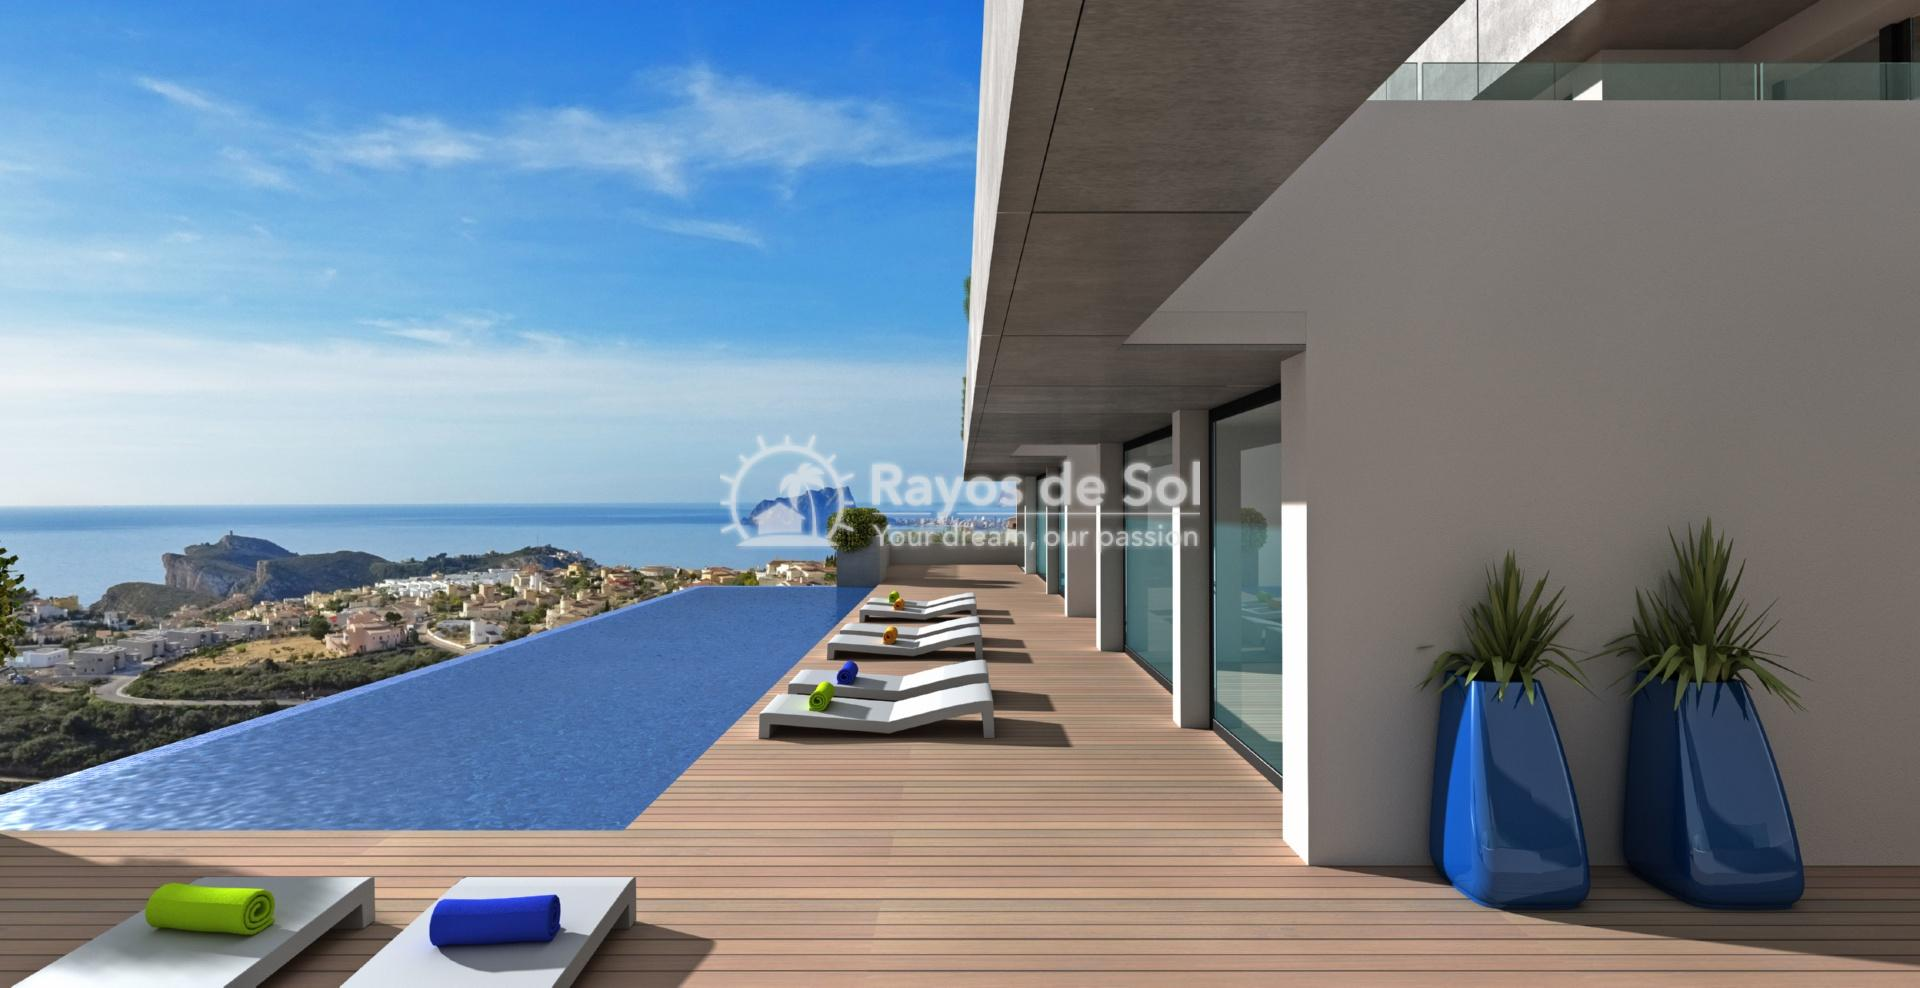 Exclusive apartment in Cumbre del Sol, Benitachell, Costa Blanca (BEVABI2-2) - 14